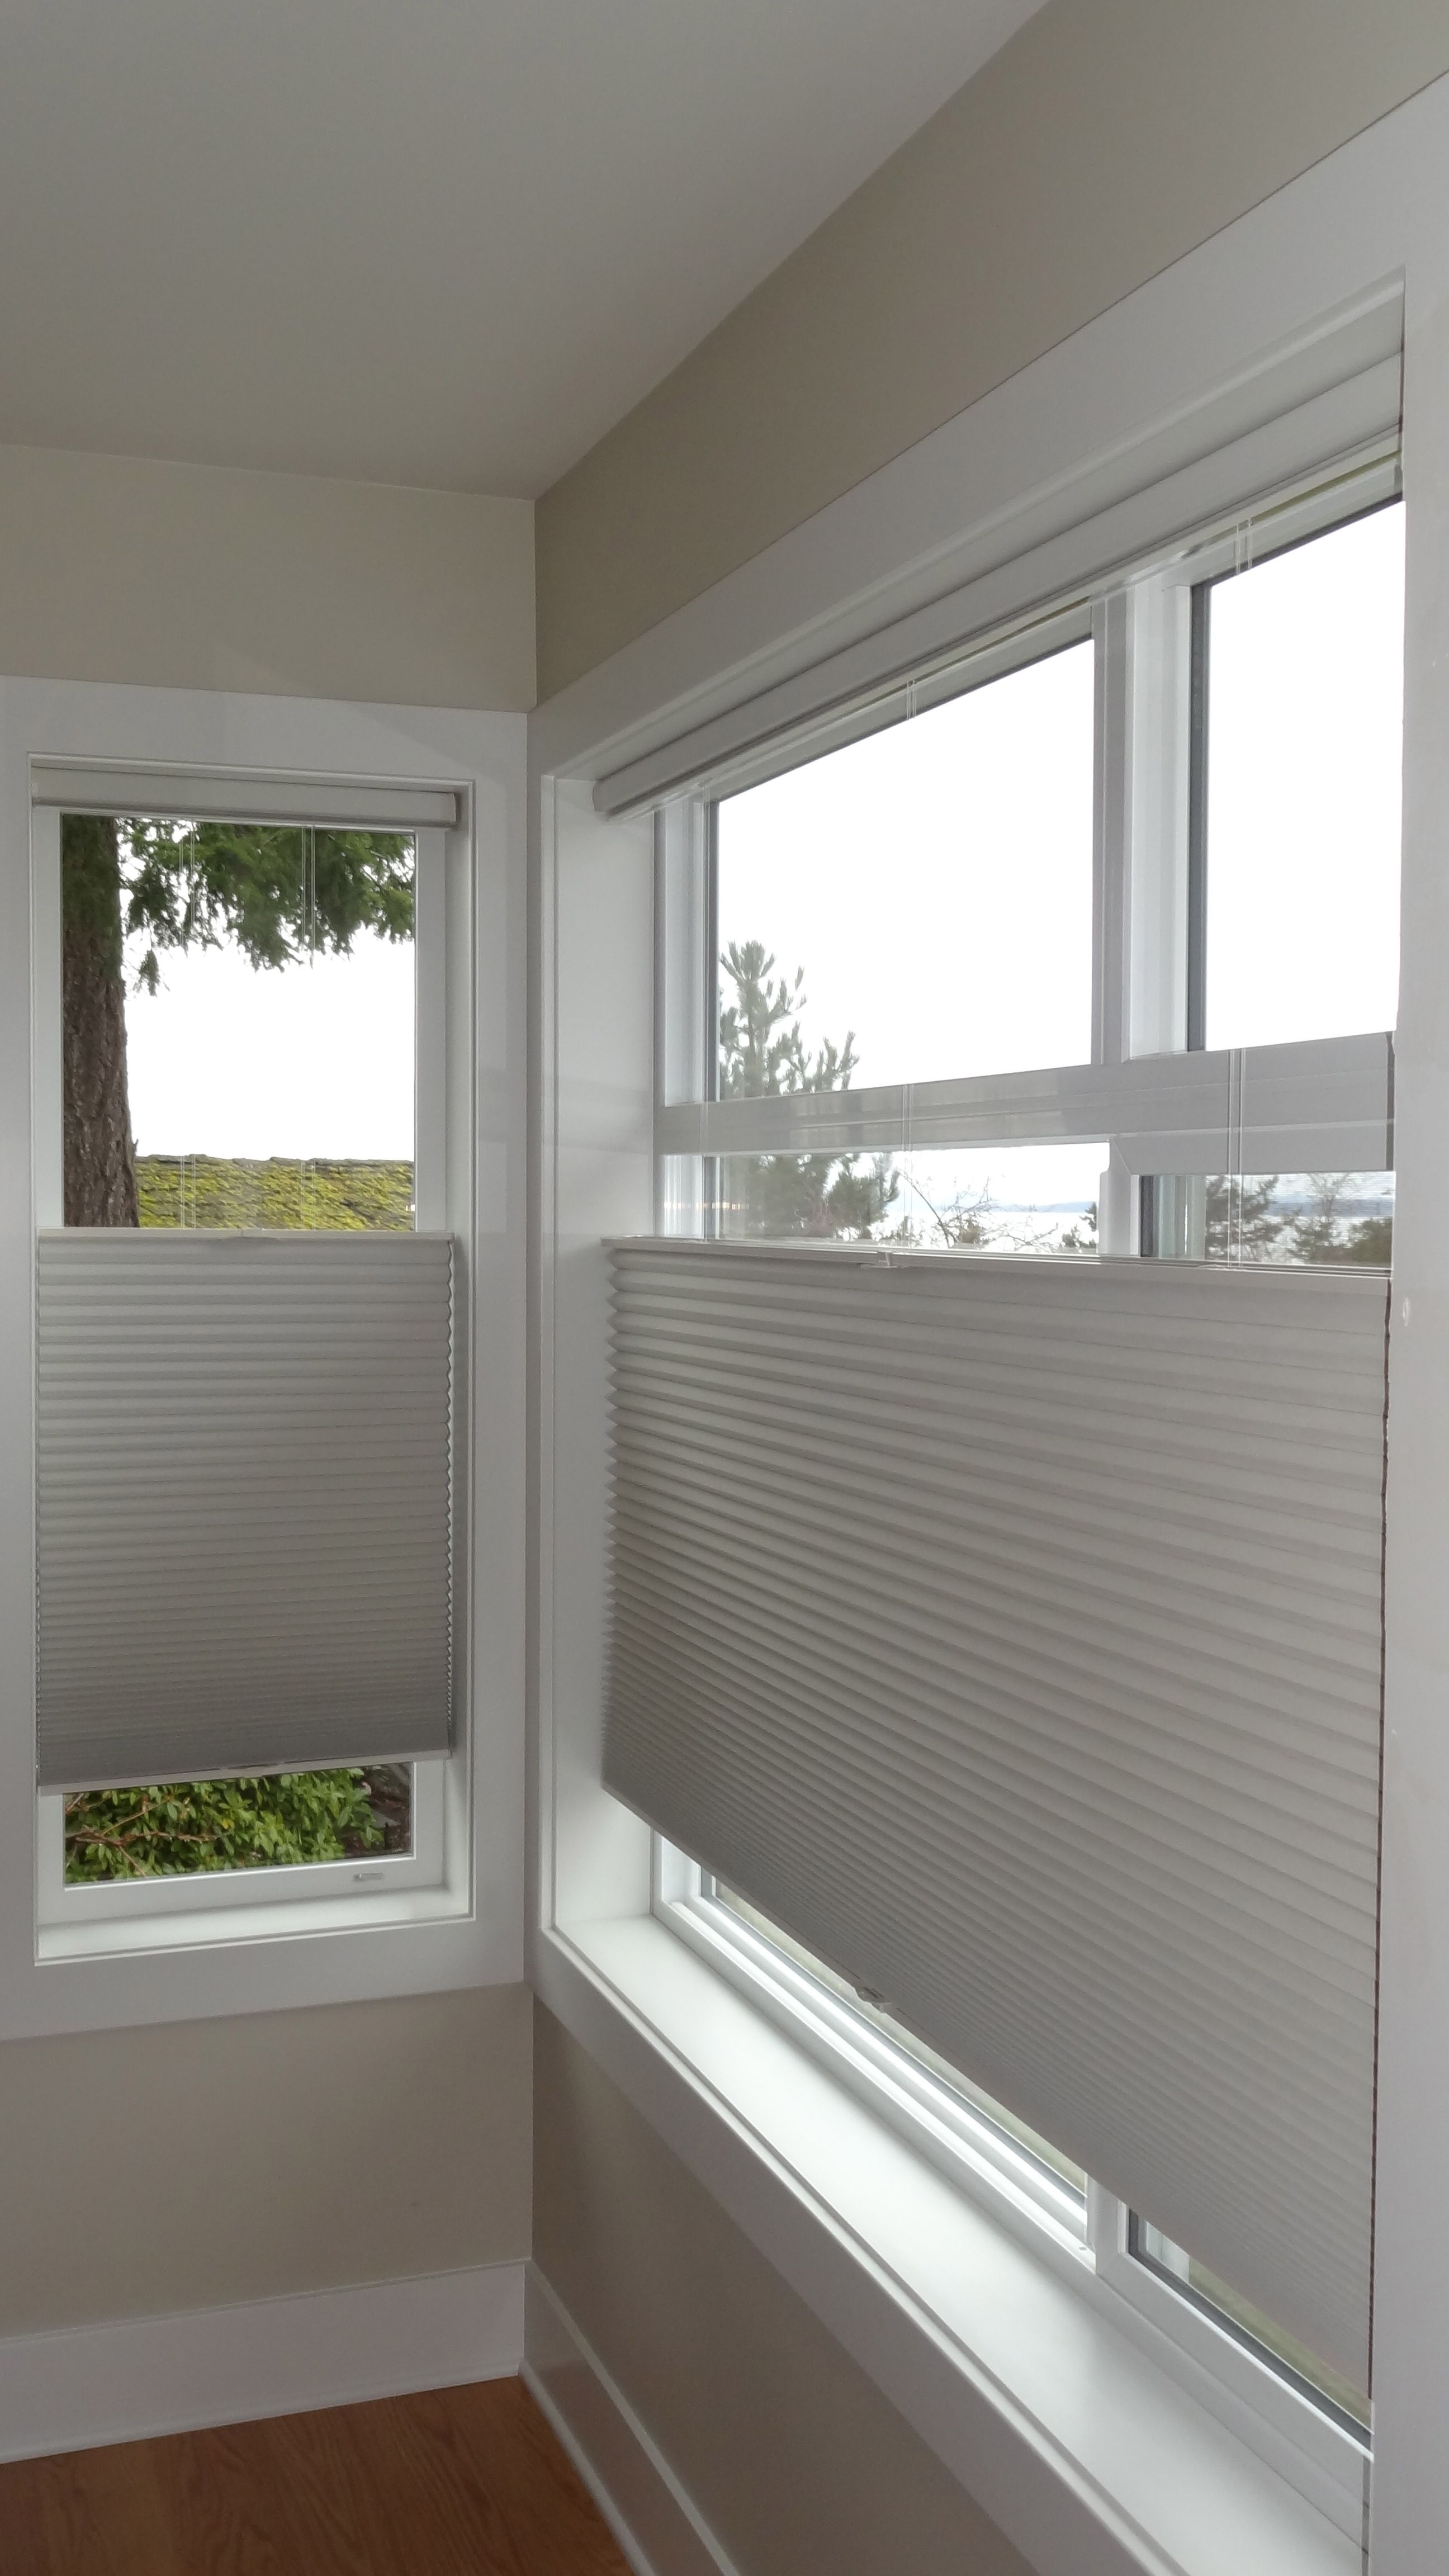 Popular window coverings  hunter douglas top down bottom up honeycomb shades cordless